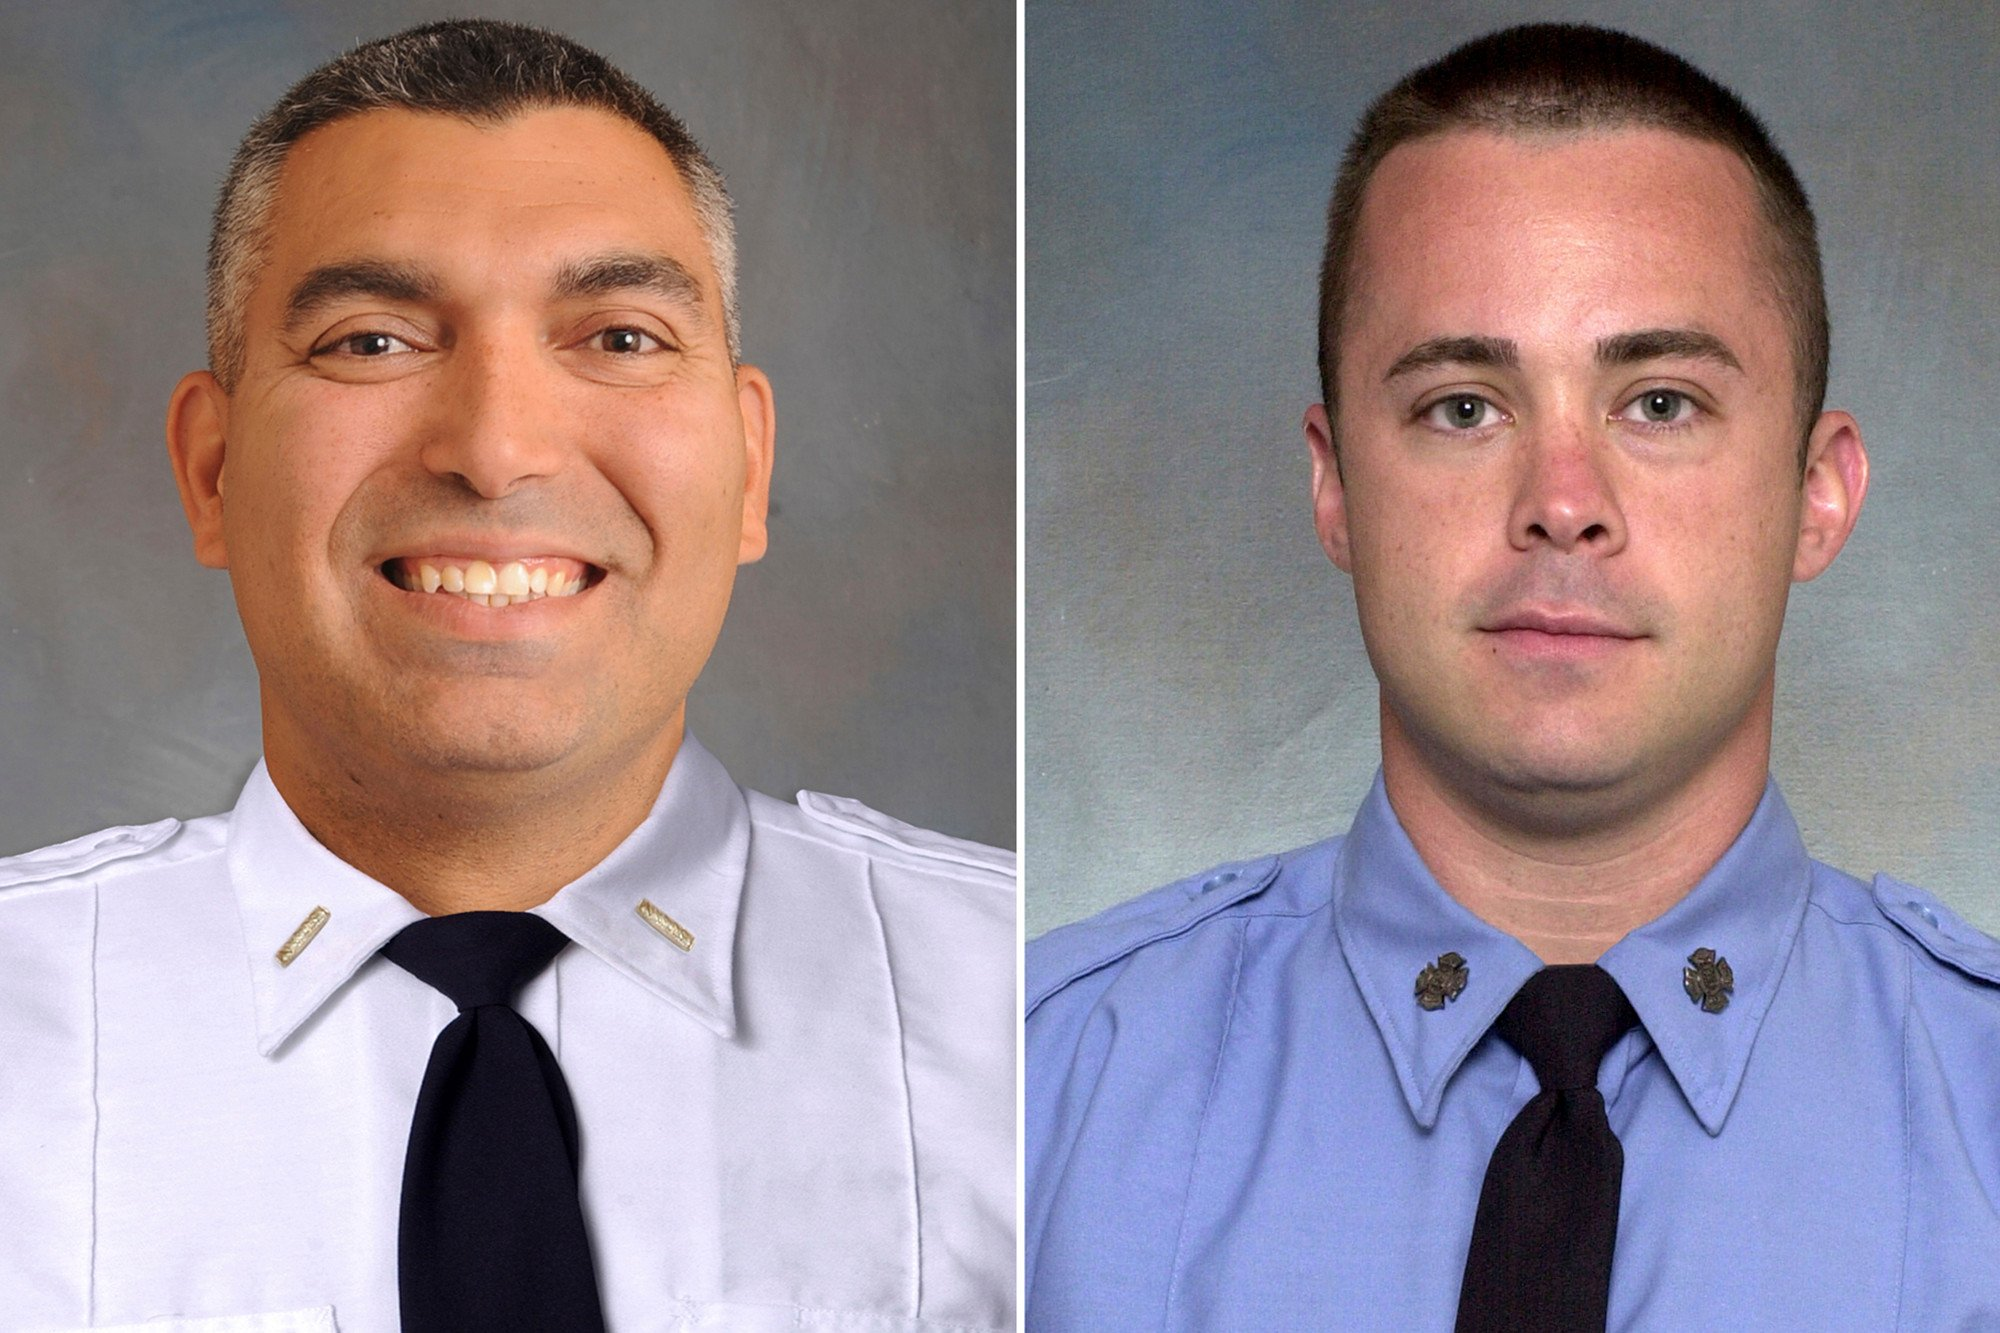 Bittersweet St. Patrick's Day for FDNY after deadly Iraq crash